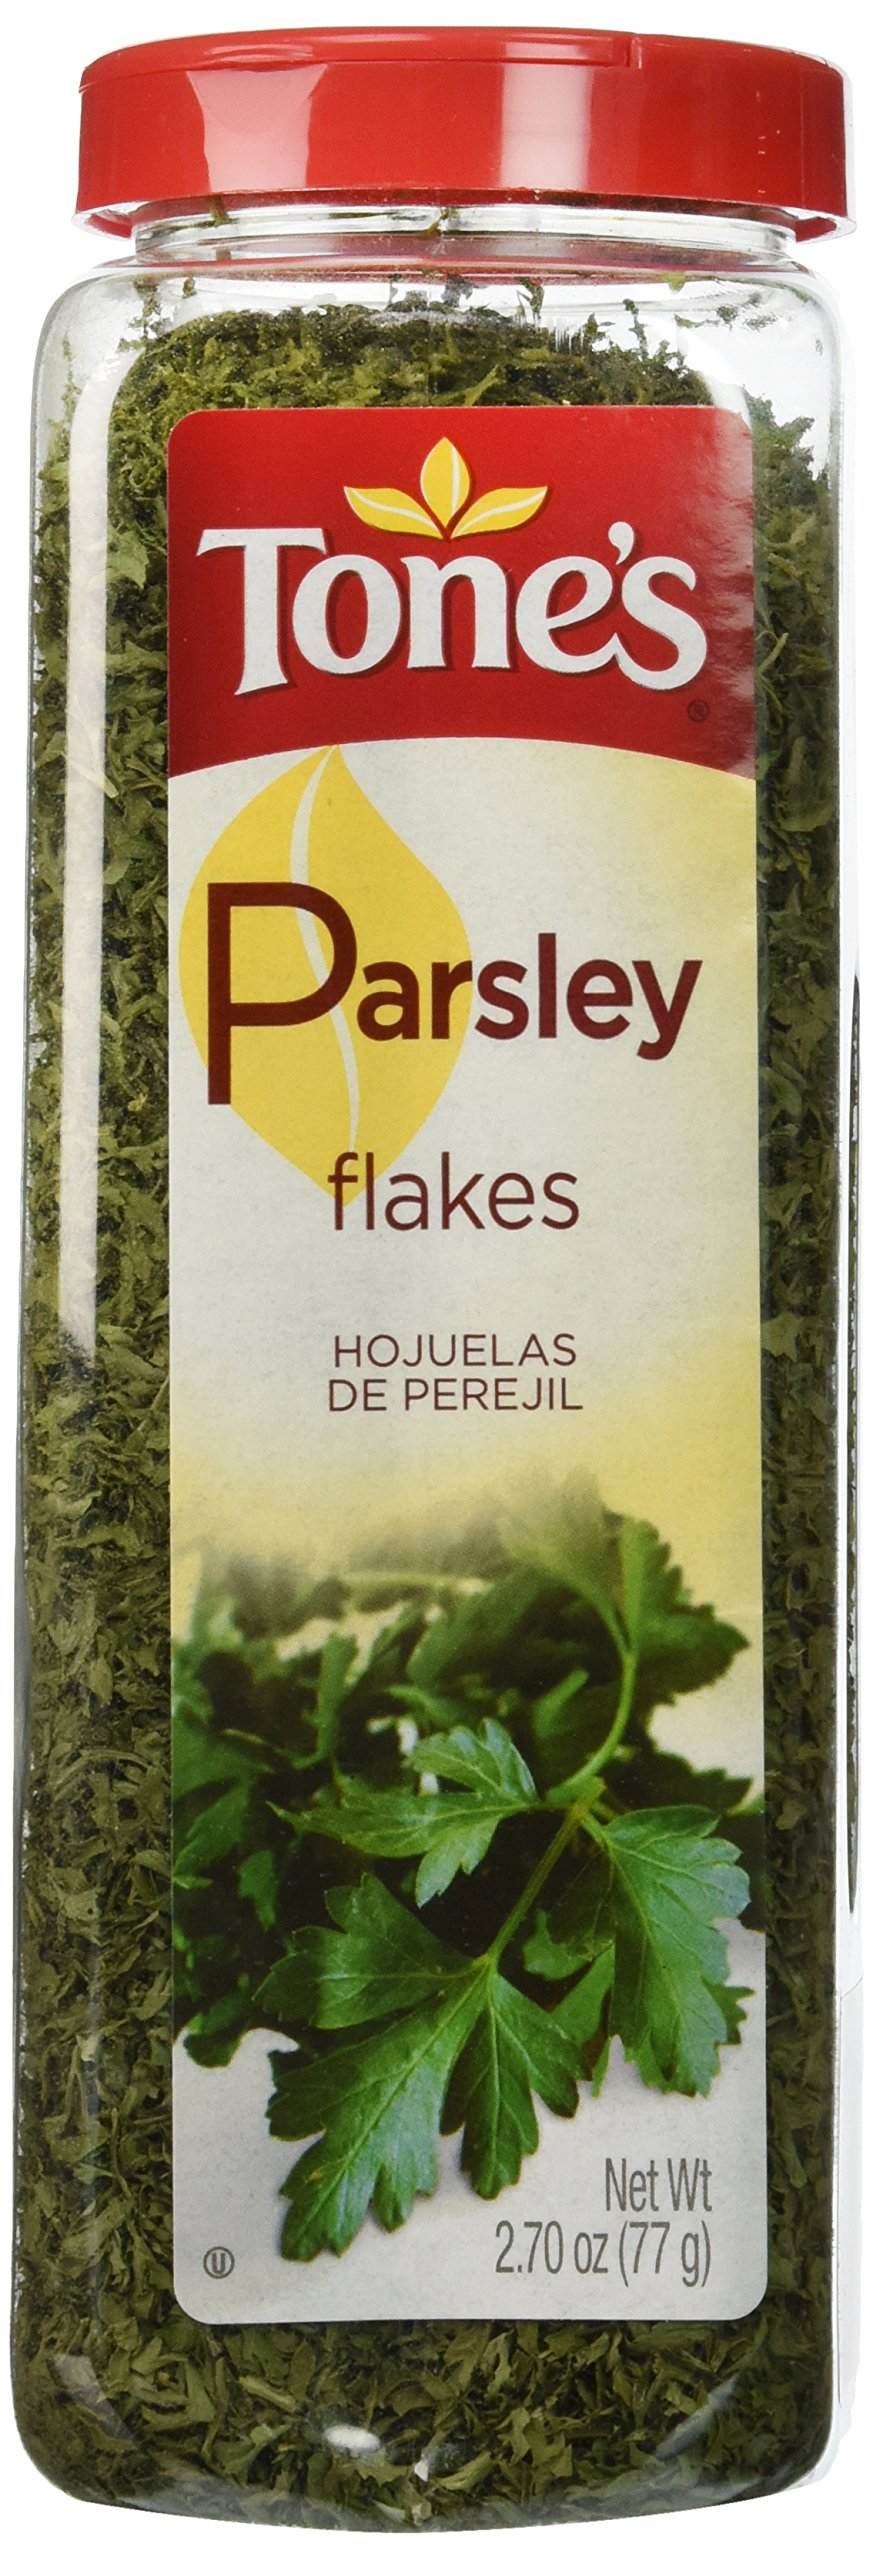 Member's Mark Parsley Flakes by Tone's, 2.7 Ounce